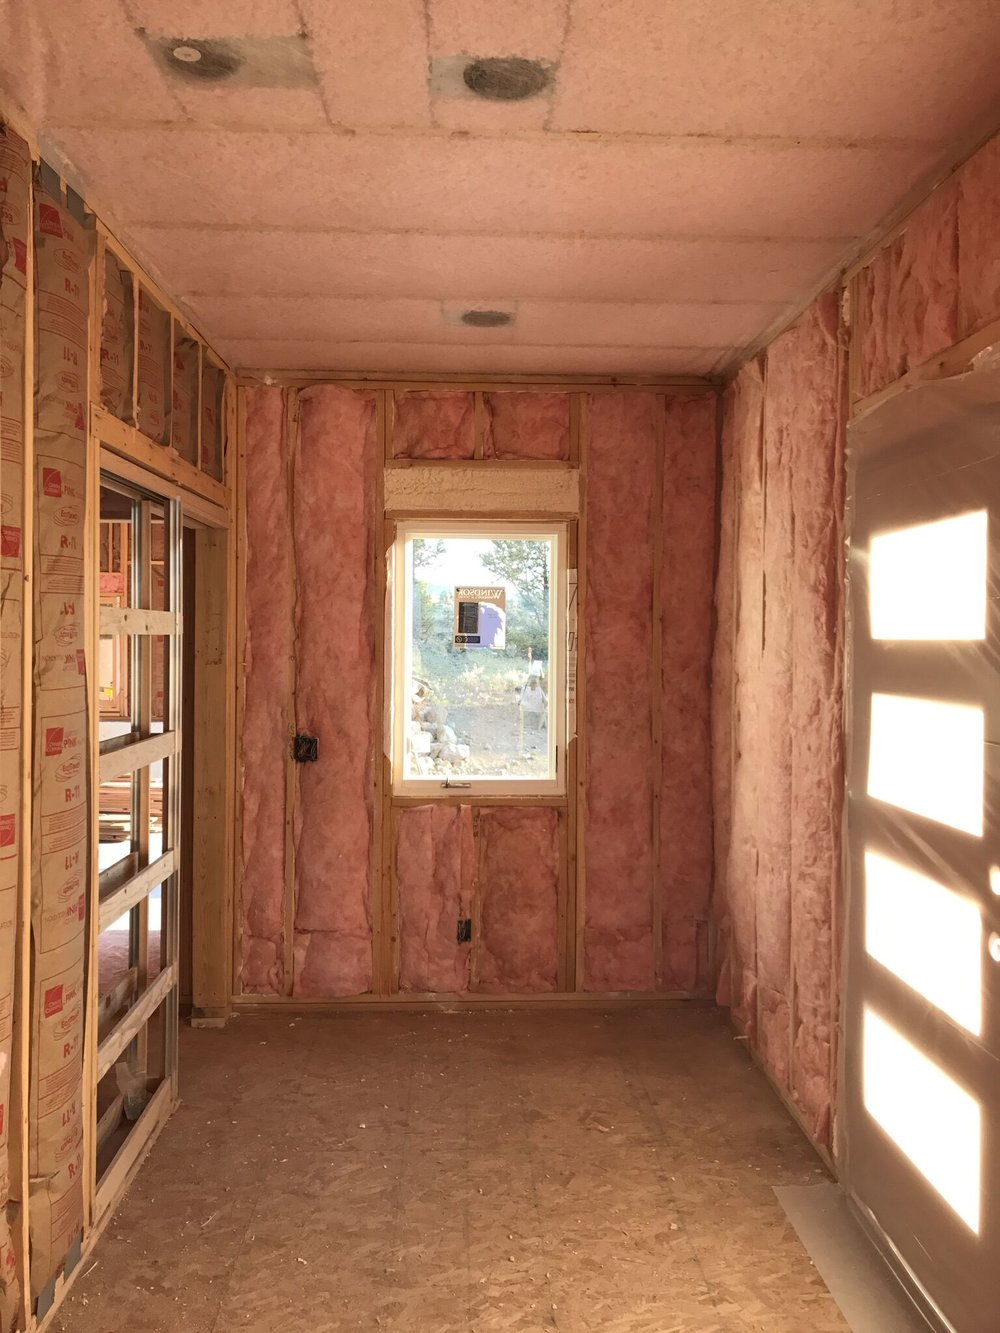 June 29 - Mud room insulation